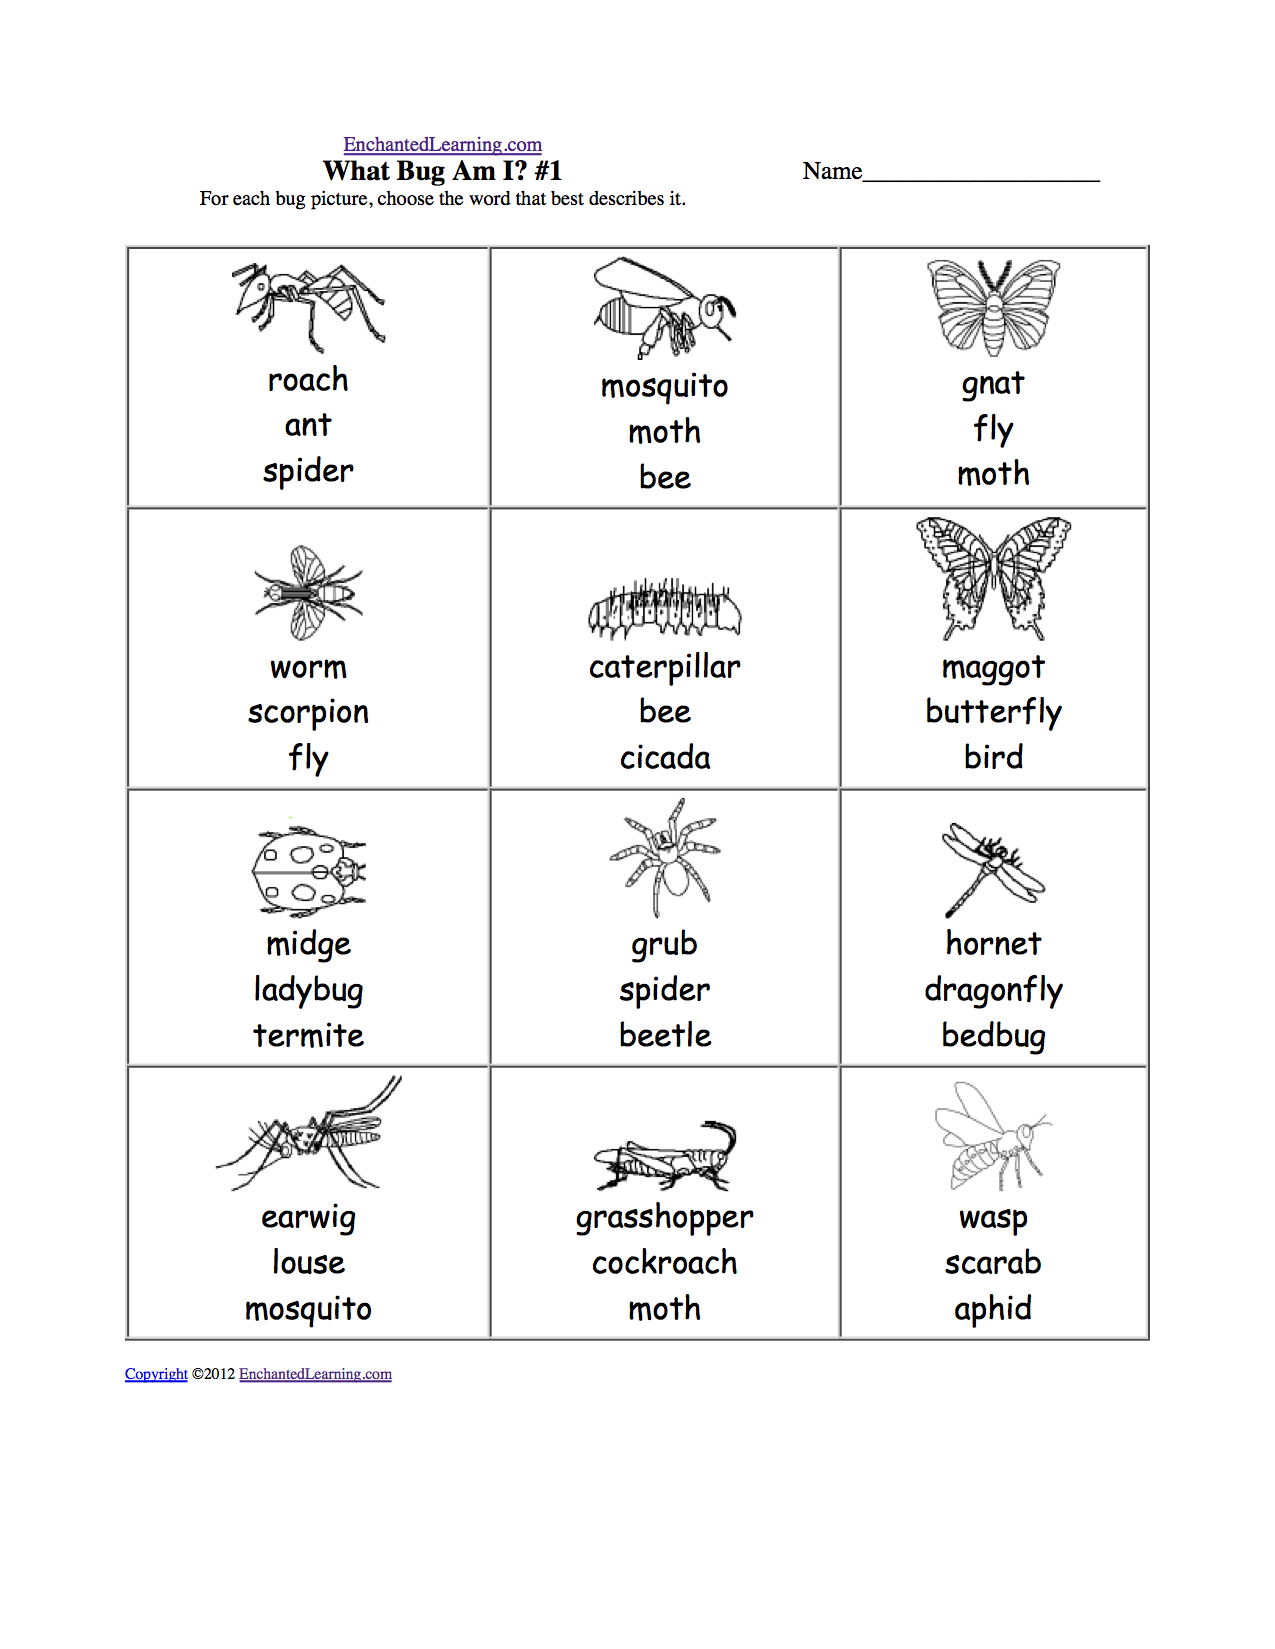 Aldiablosus  Unique What Am I Worksheet Printouts  Enchantedlearningcom With Extraordinary Function Graphs Worksheet Besides Fun Math Multiplication Worksheets Furthermore Free Decimal Place Value Worksheets With Comely Seventh Grade Grammar Worksheets Also Daily Worksheet Template In Addition Language Worksheets For St Grade And Balanced And Unbalanced Forces Worksheets As Well As Nouns Worksheet First Grade Additionally Skip Counting By S Worksheets From Enchantedlearningcom With Aldiablosus  Extraordinary What Am I Worksheet Printouts  Enchantedlearningcom With Comely Function Graphs Worksheet Besides Fun Math Multiplication Worksheets Furthermore Free Decimal Place Value Worksheets And Unique Seventh Grade Grammar Worksheets Also Daily Worksheet Template In Addition Language Worksheets For St Grade From Enchantedlearningcom